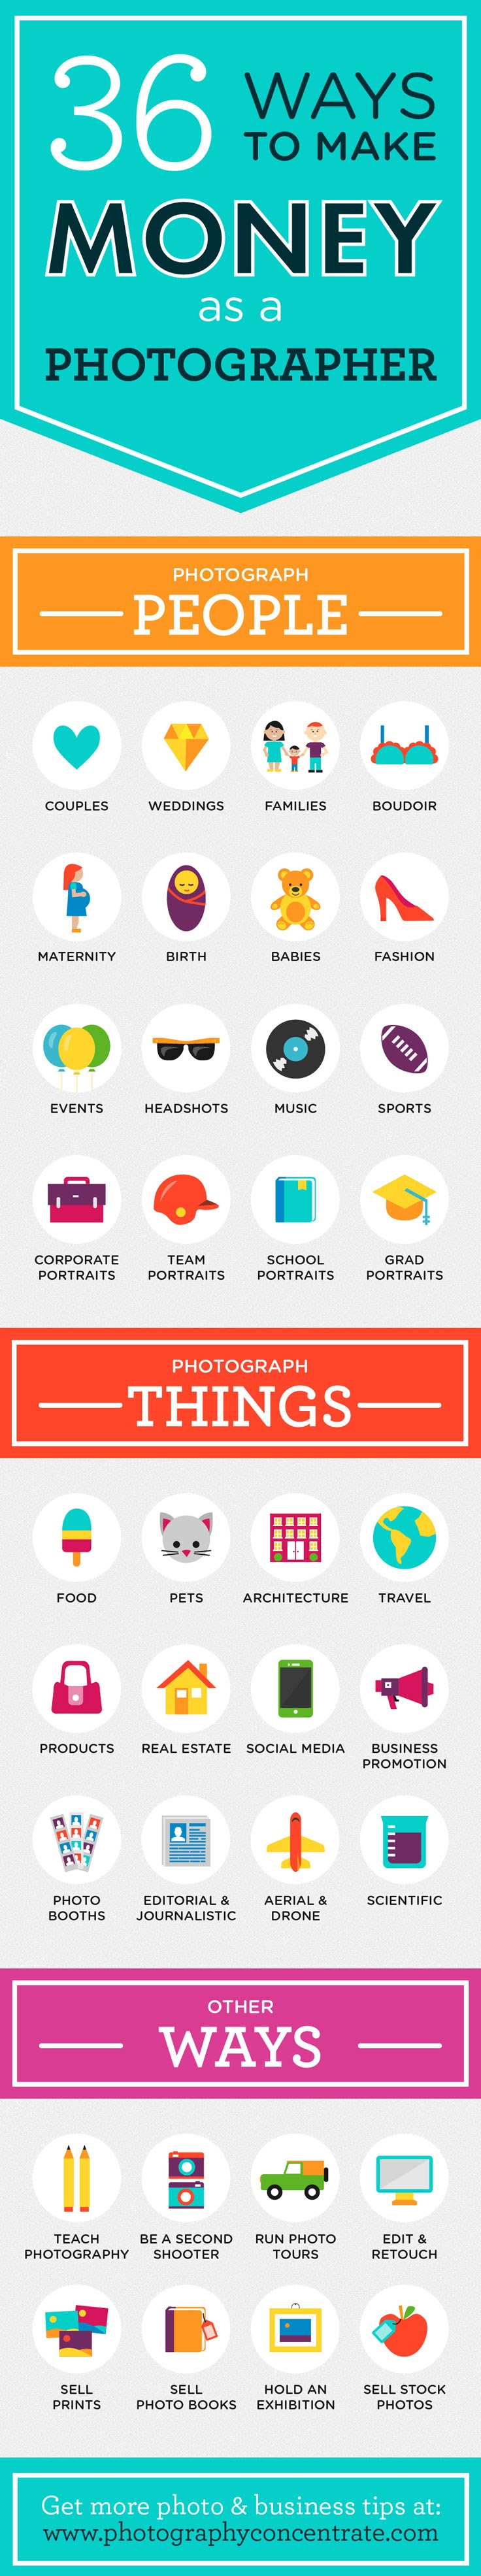 36 Ways to Make Money as a Photographer - #infographic